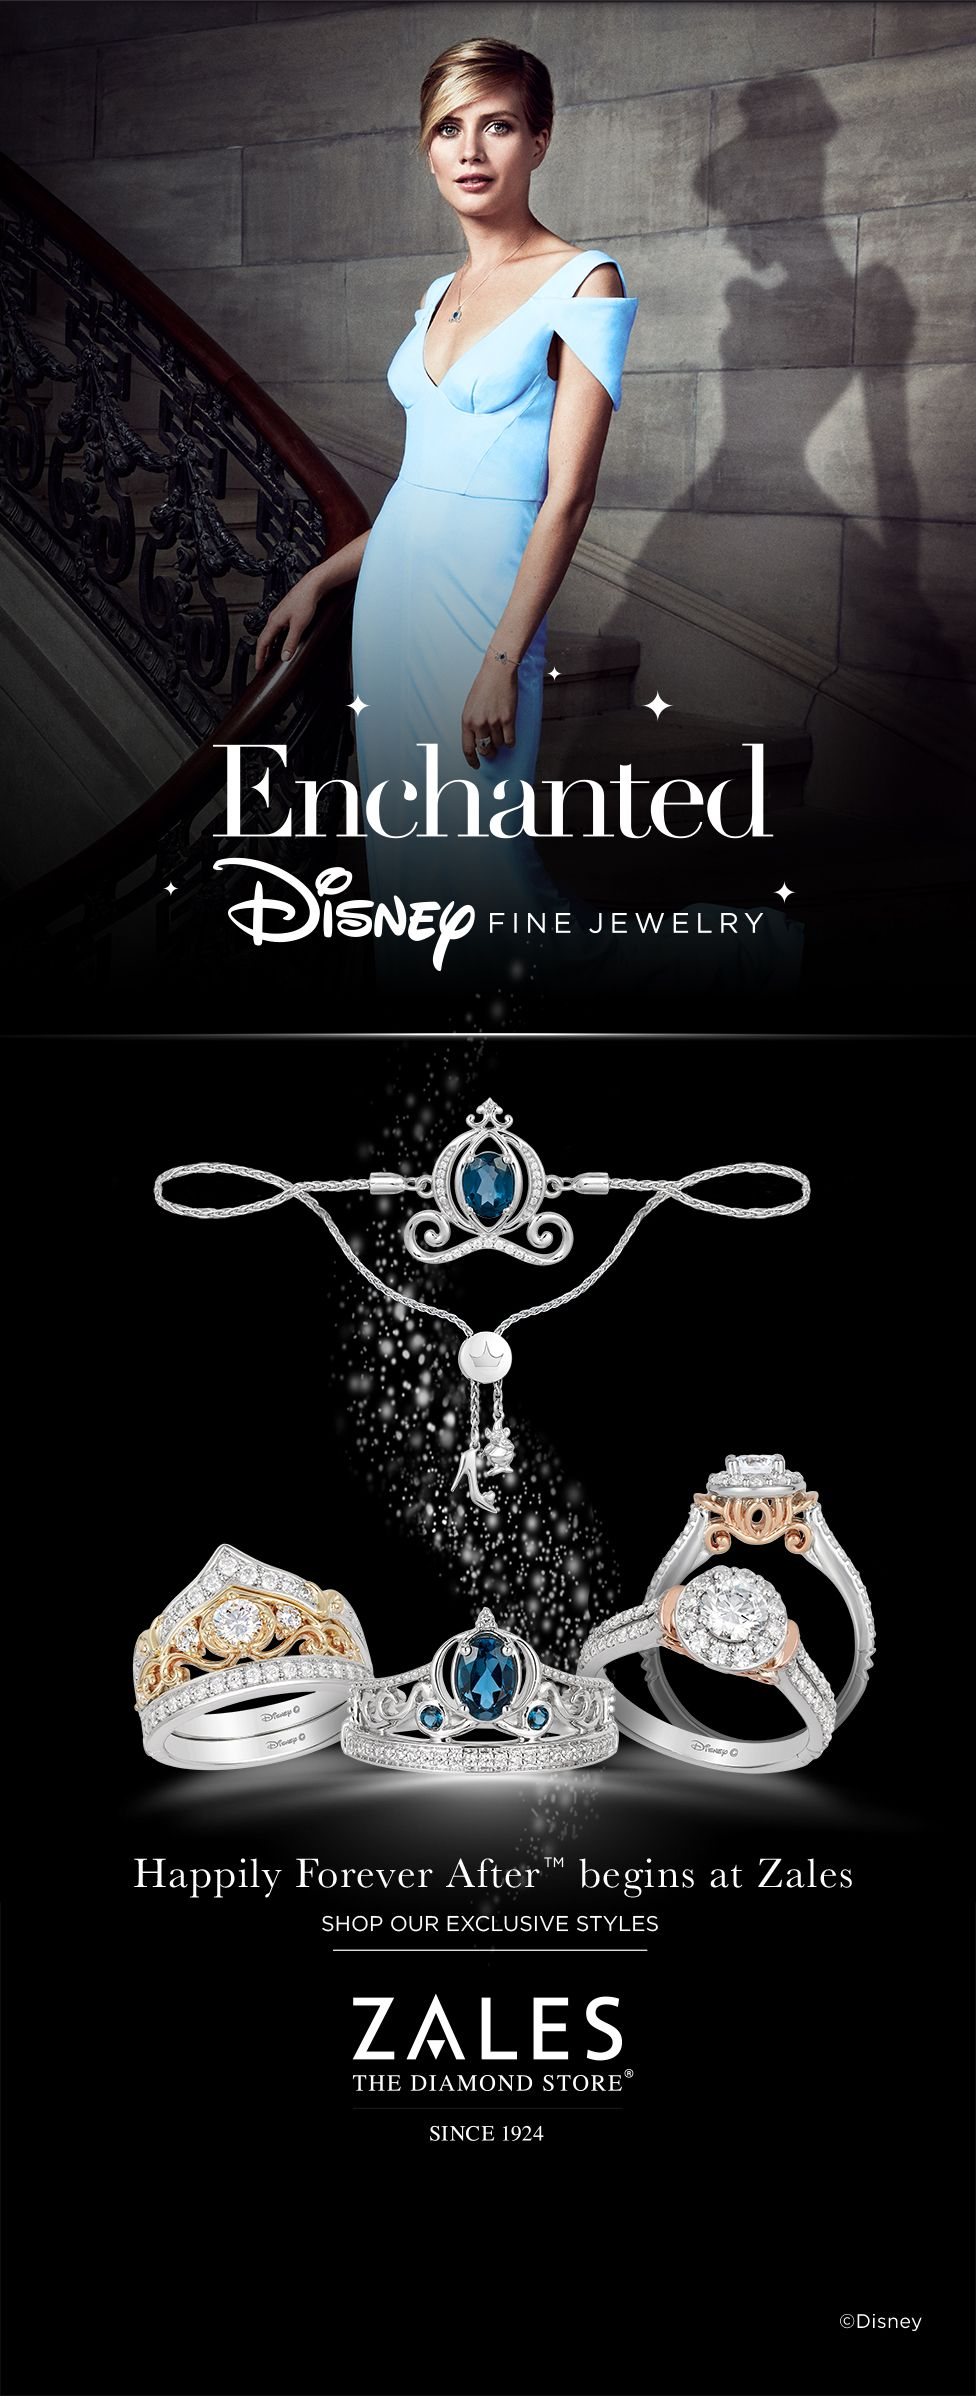 If You Believe In Romance Dreams And Happily Forever After You Will Fall In Love With Enchan Disney Fine Jewelry Enchanted Disney Fine Jewelry Disney Jewelry